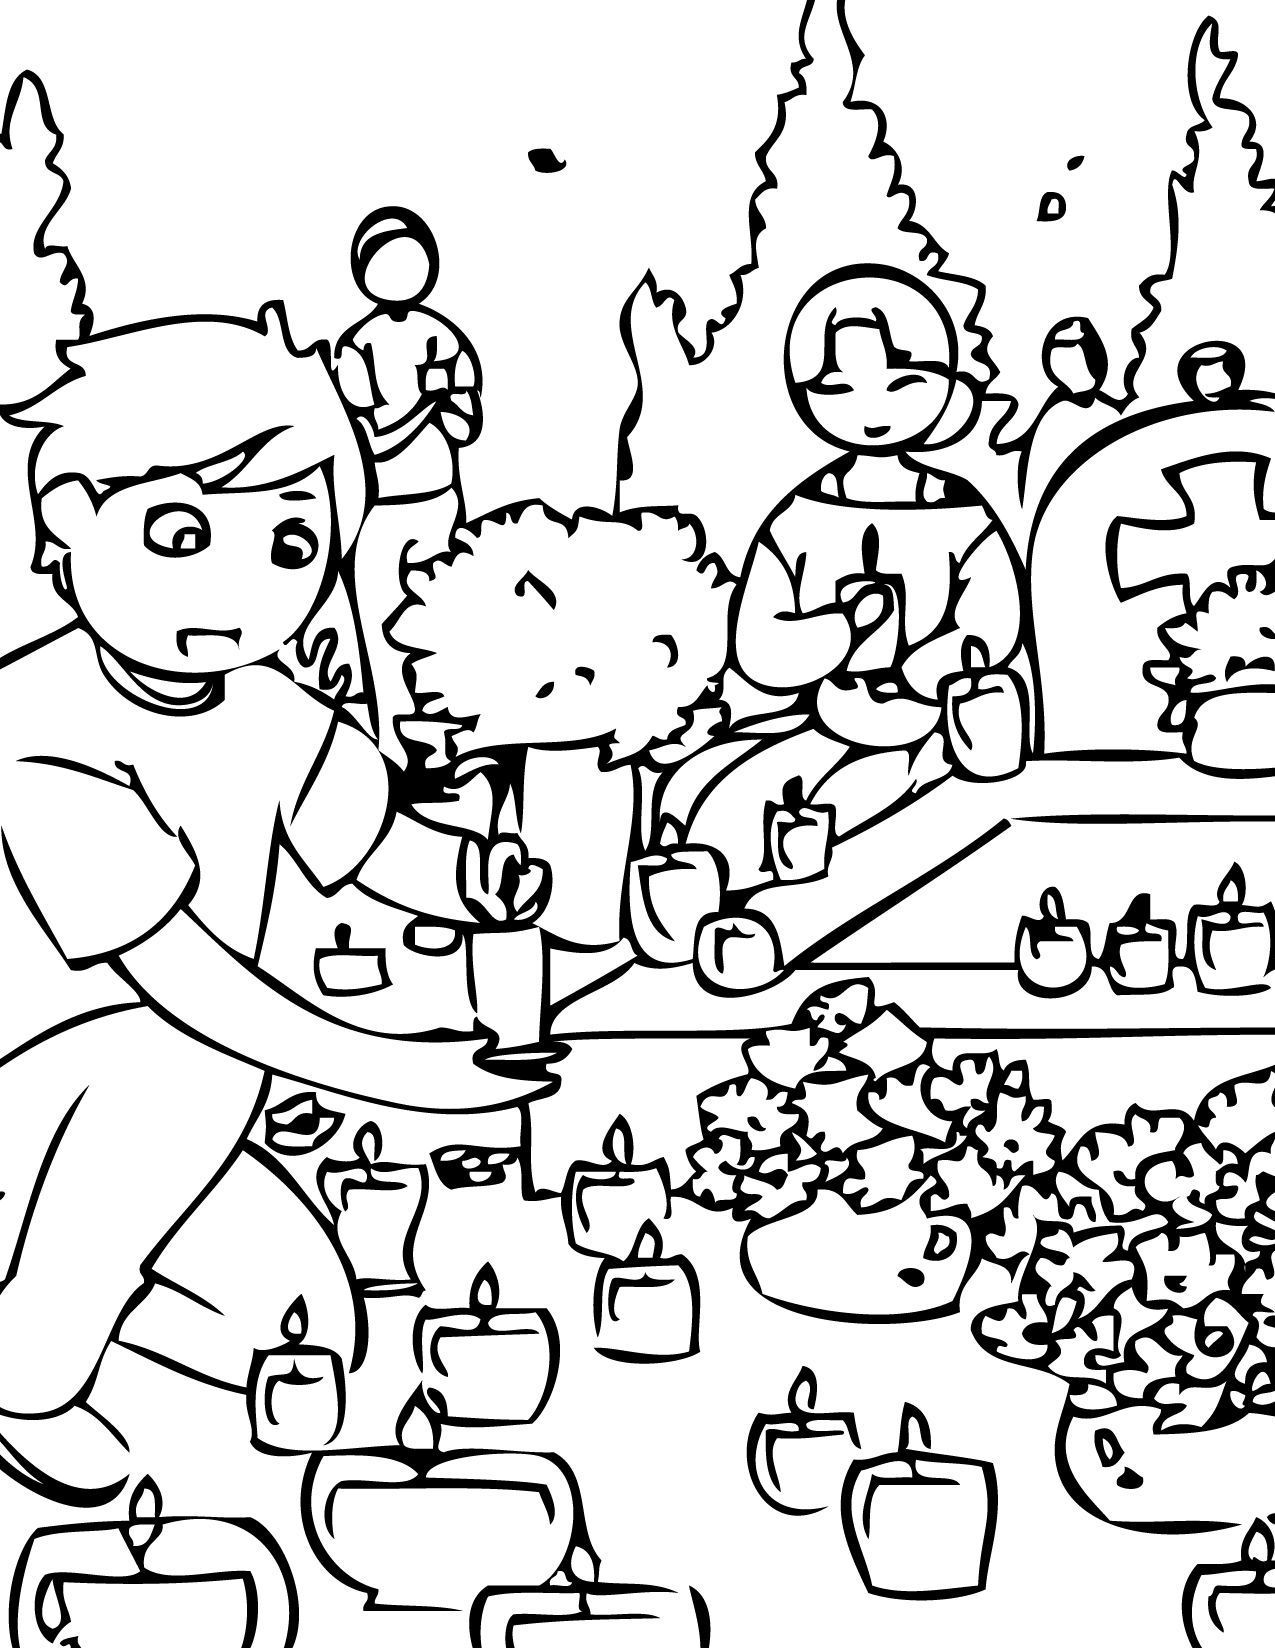 All Saints Day Coloring Pages Coloring Home All Saints Day Coloring Pages Saints Days In 2021 Coloring Pages For Boys Printable Coloring Pages Free Coloring Pages